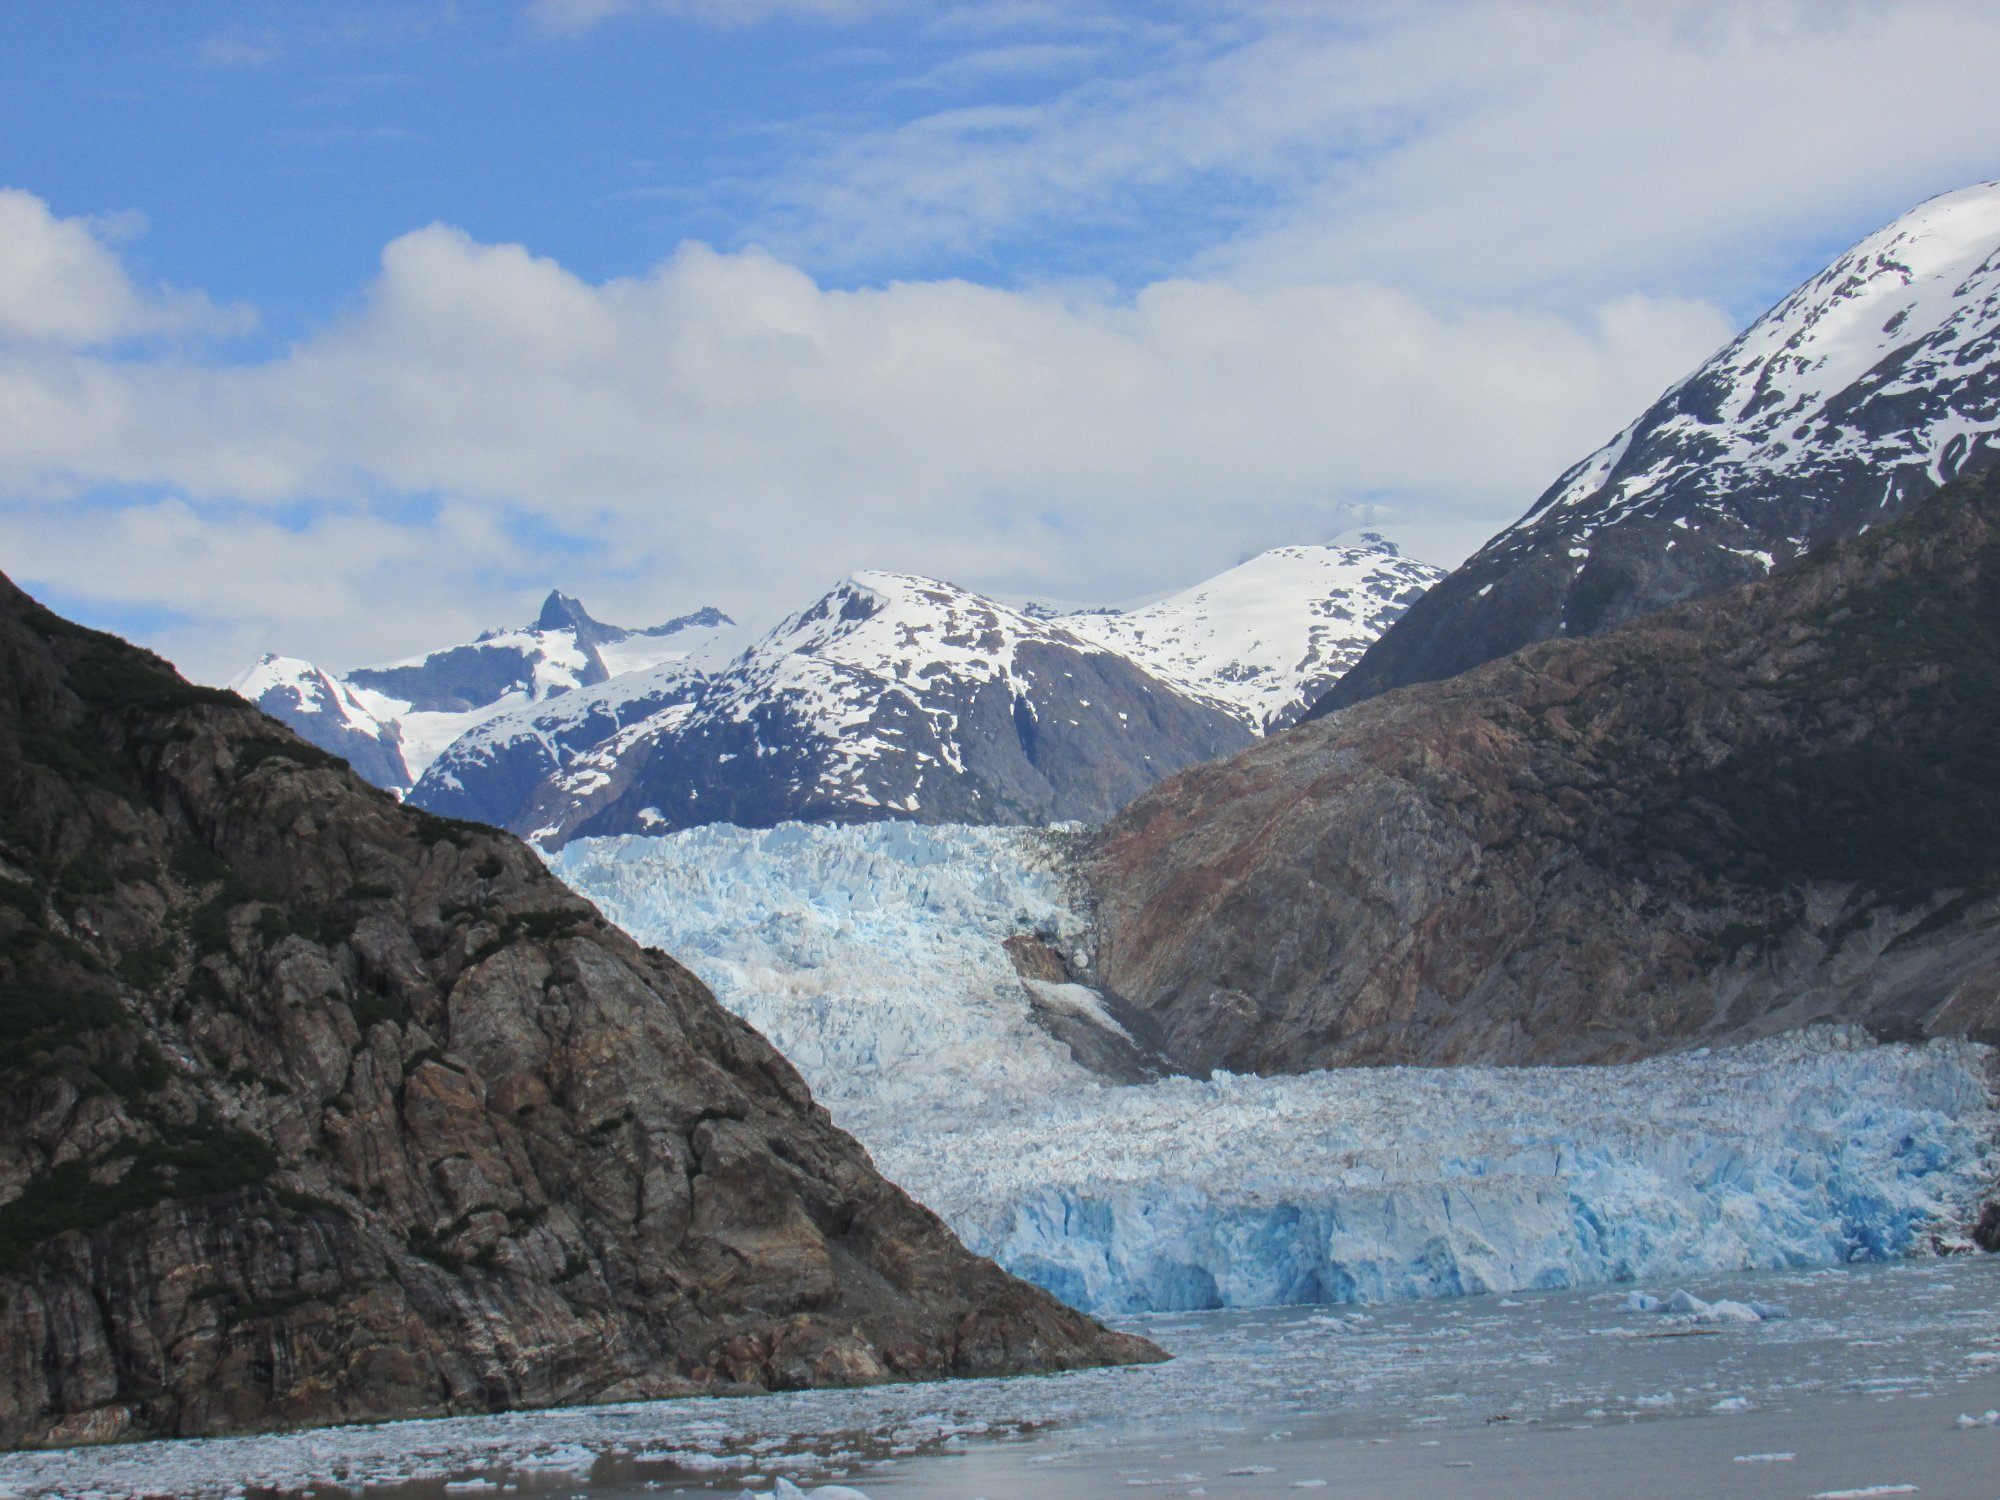 Breathtaking view of the glacier